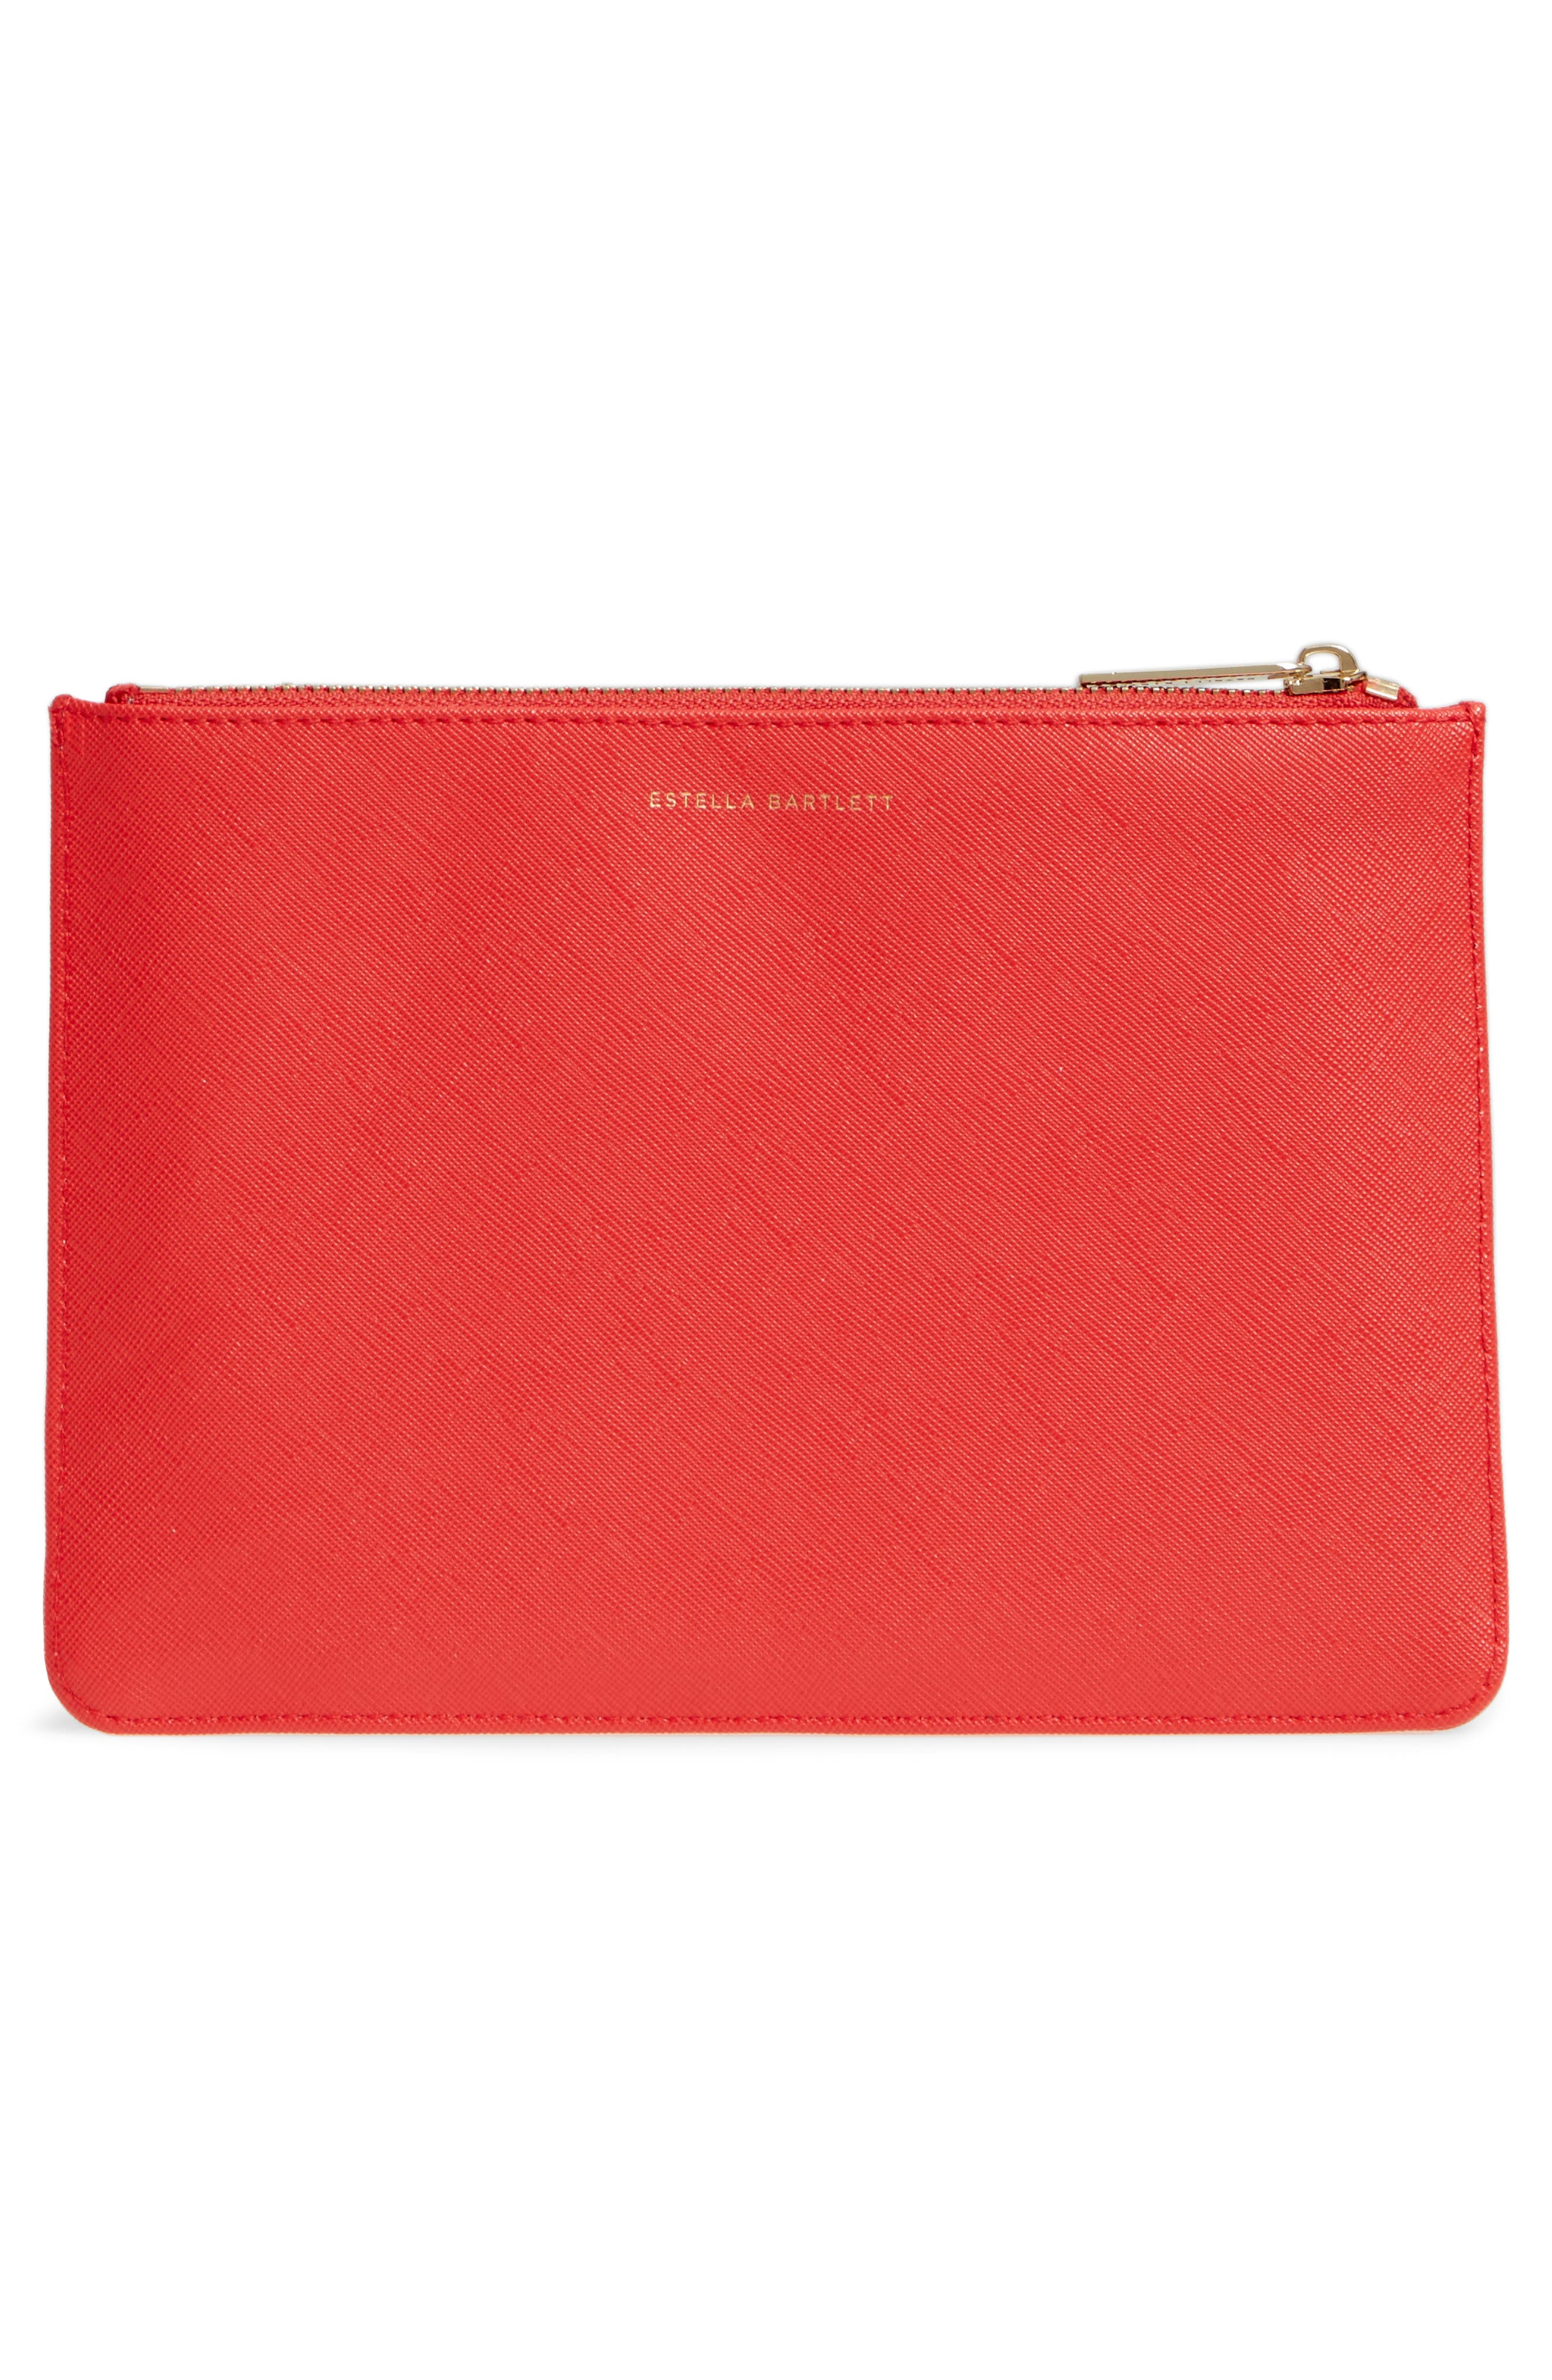 XOXO Medium Faux Leather Pouch,                             Alternate thumbnail 3, color,                             Red